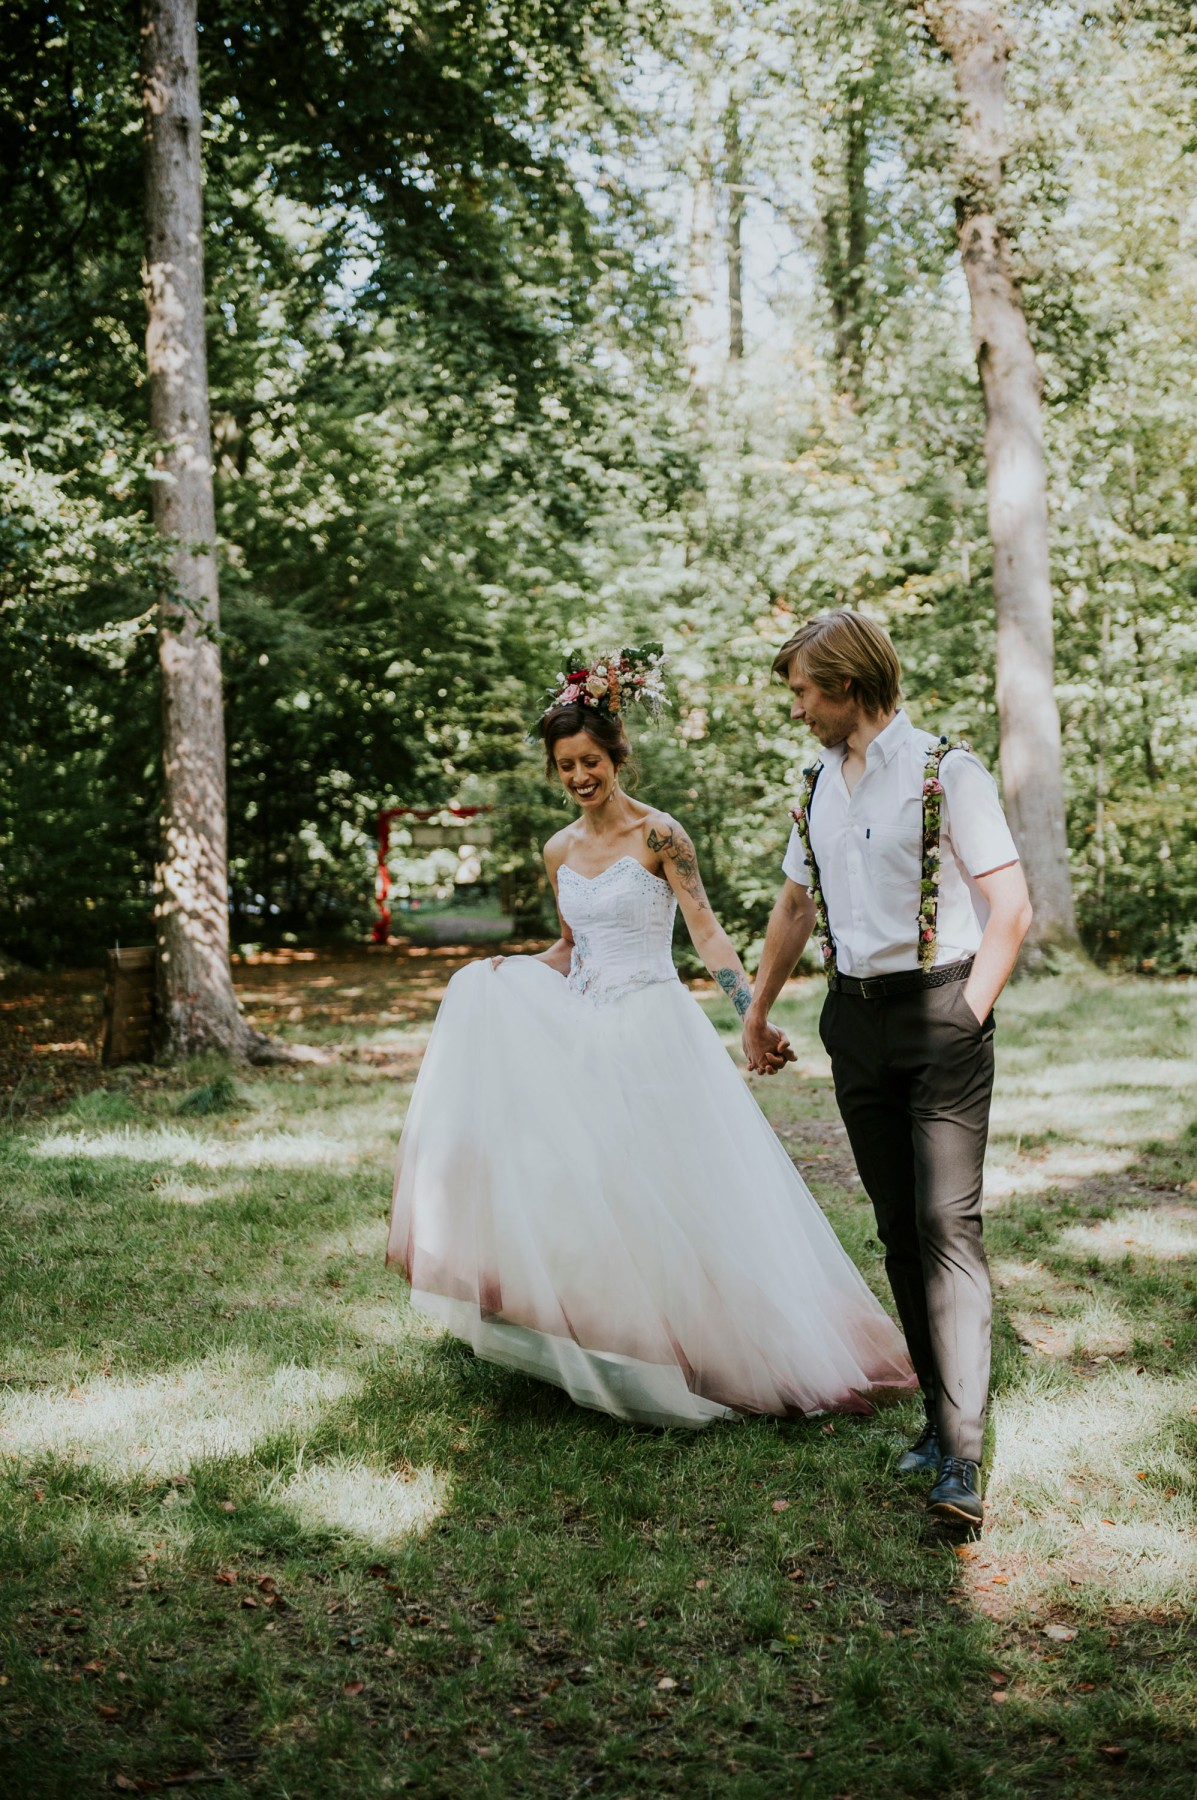 ethereal wedding - circus themed wedding - ombre wedding dress & quirky grooms wear